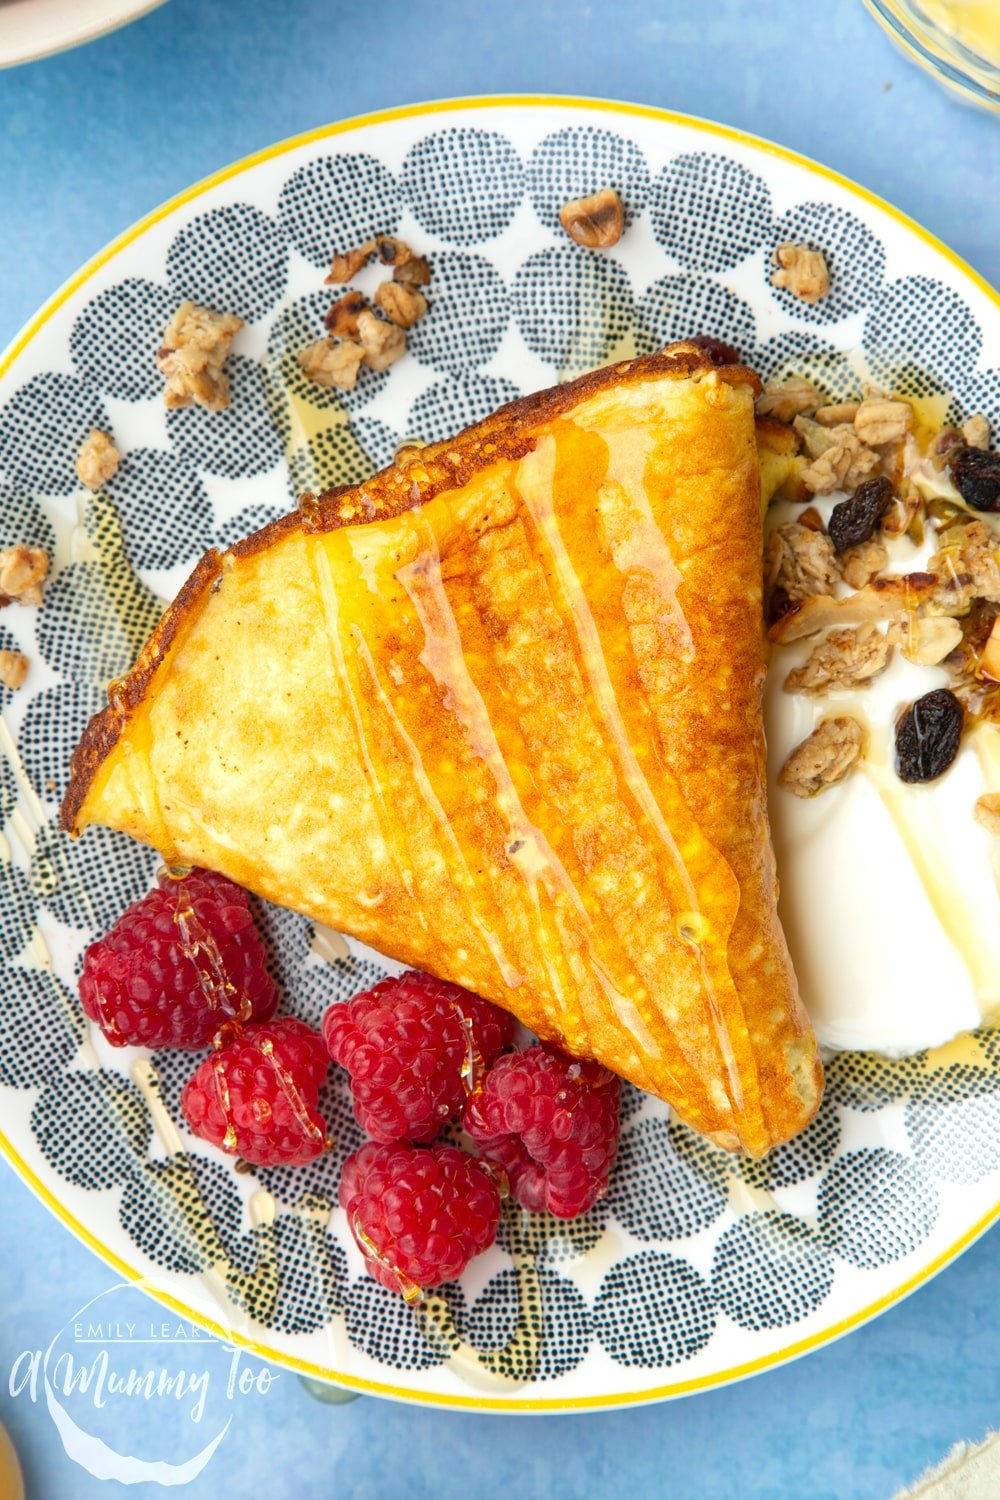 Sweet omelette served onto a plate with raspberries, yogurt, granola and honey